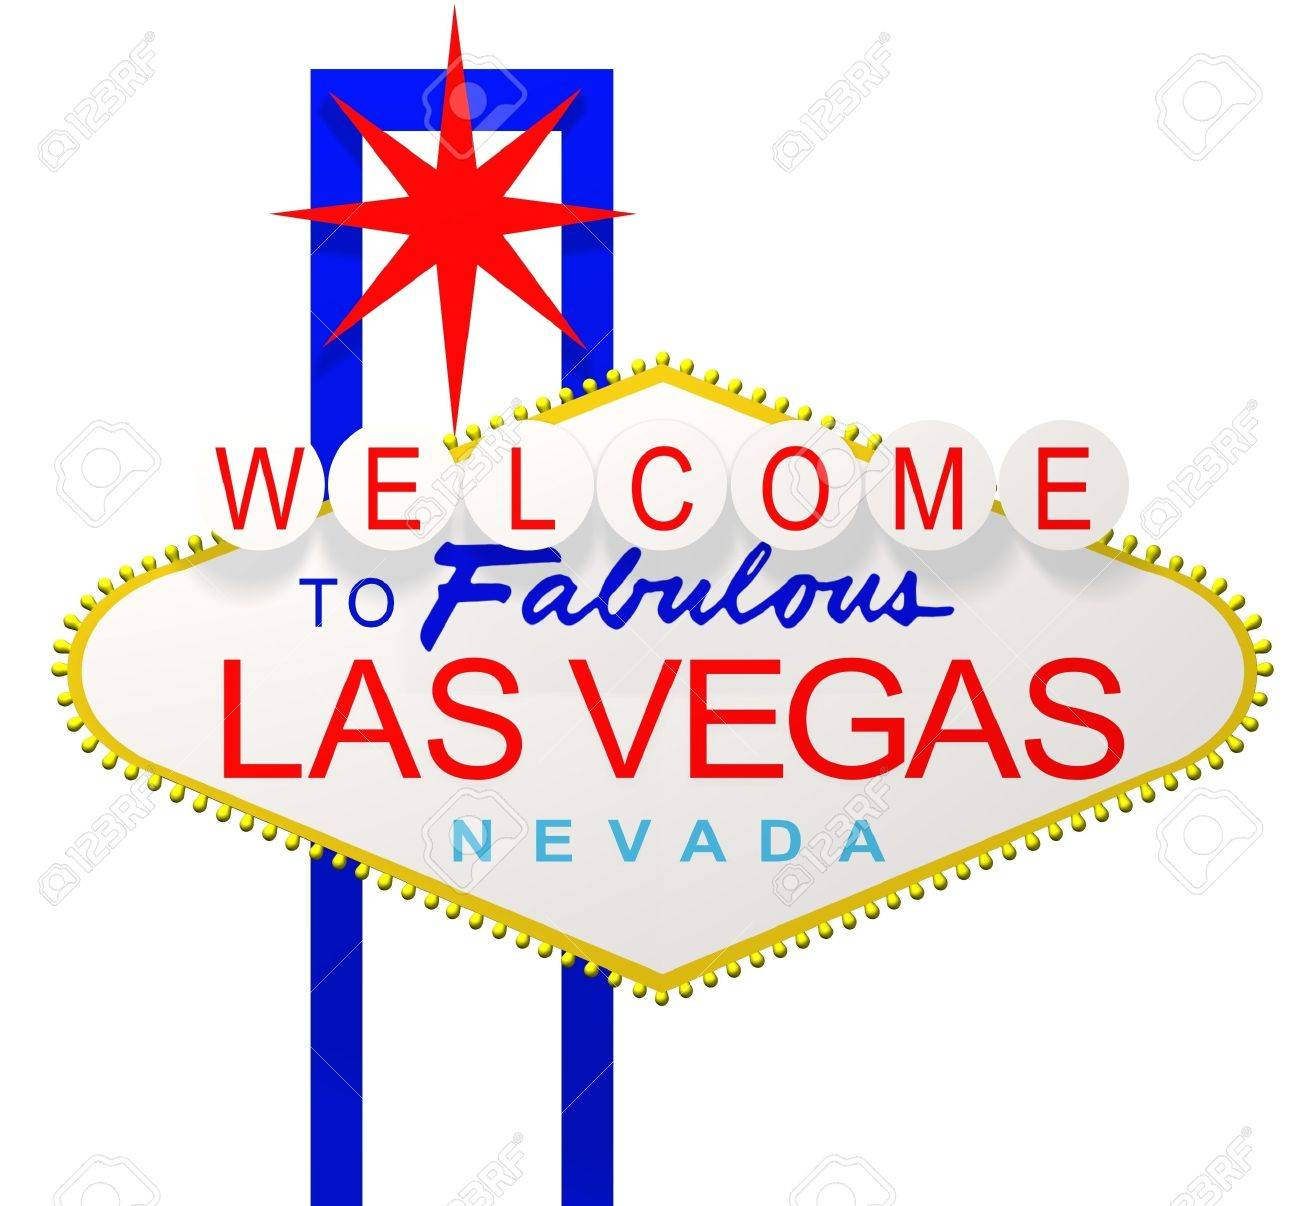 3d render of the sign welcome to fabulous las vegas nevada stock rh 123rf com las vegas clip art borders las vegas clip art free